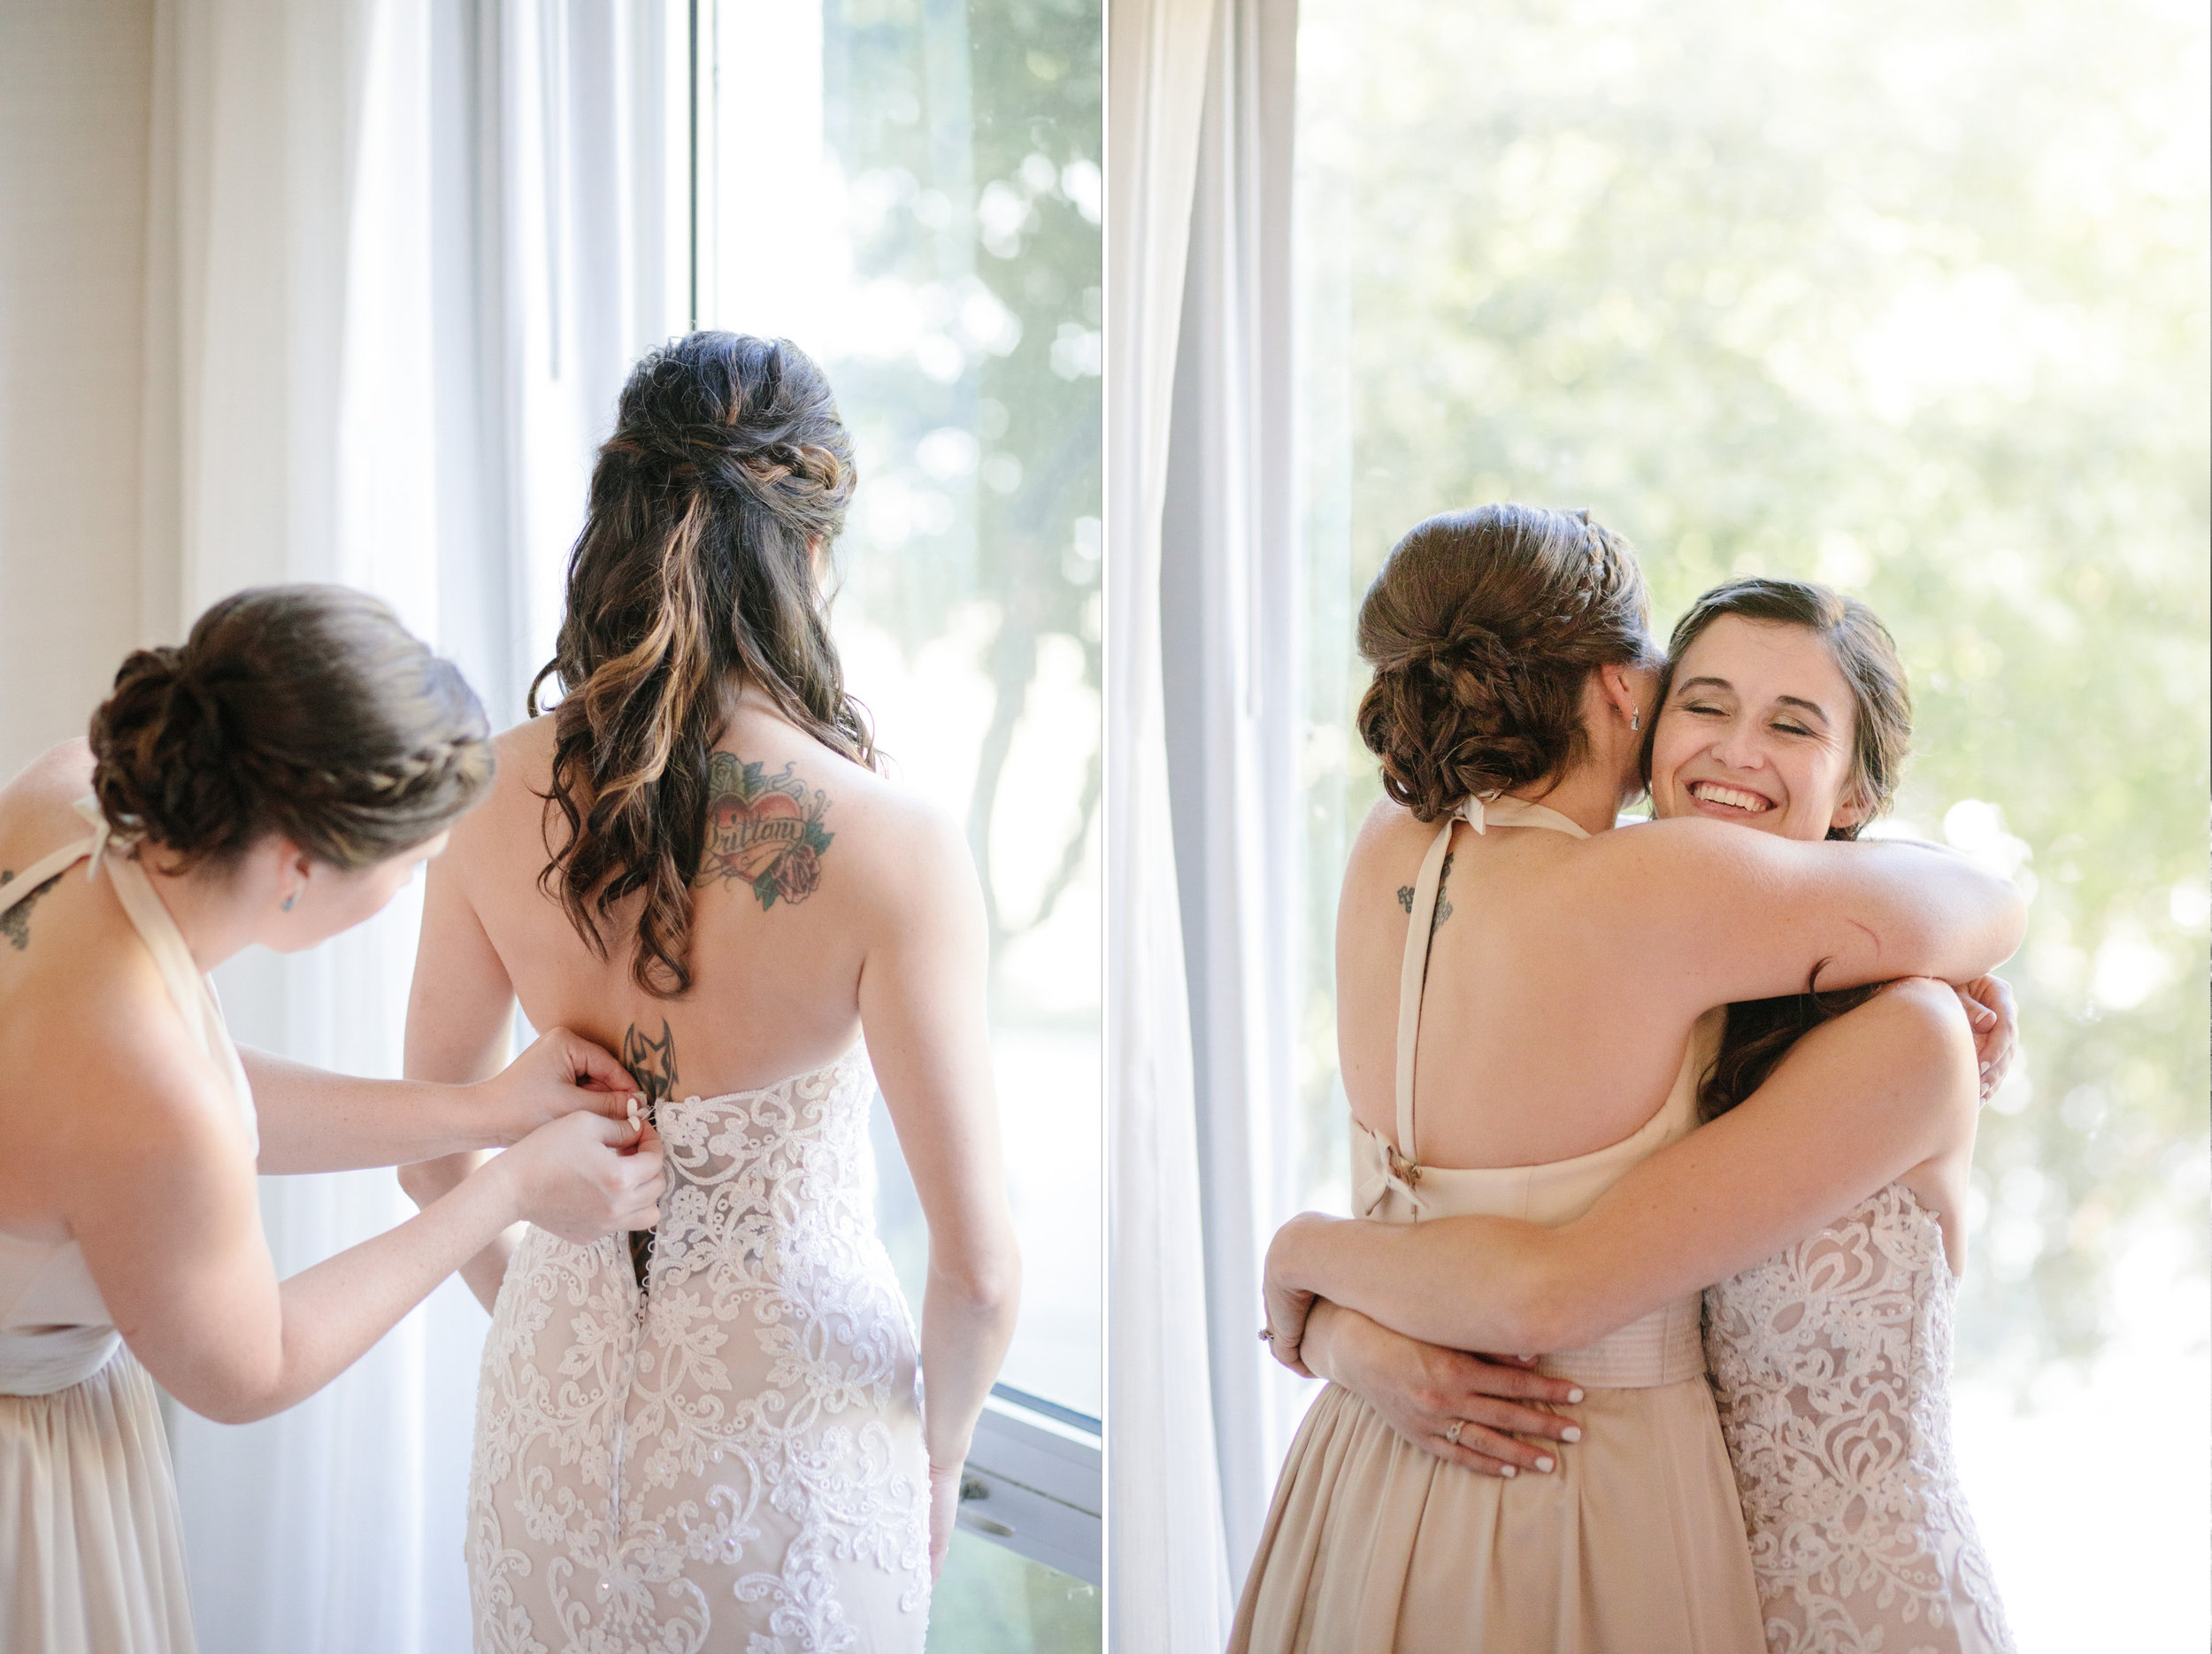 bride's sister and maid of honor holly helping her into dress and hugging on wedding day